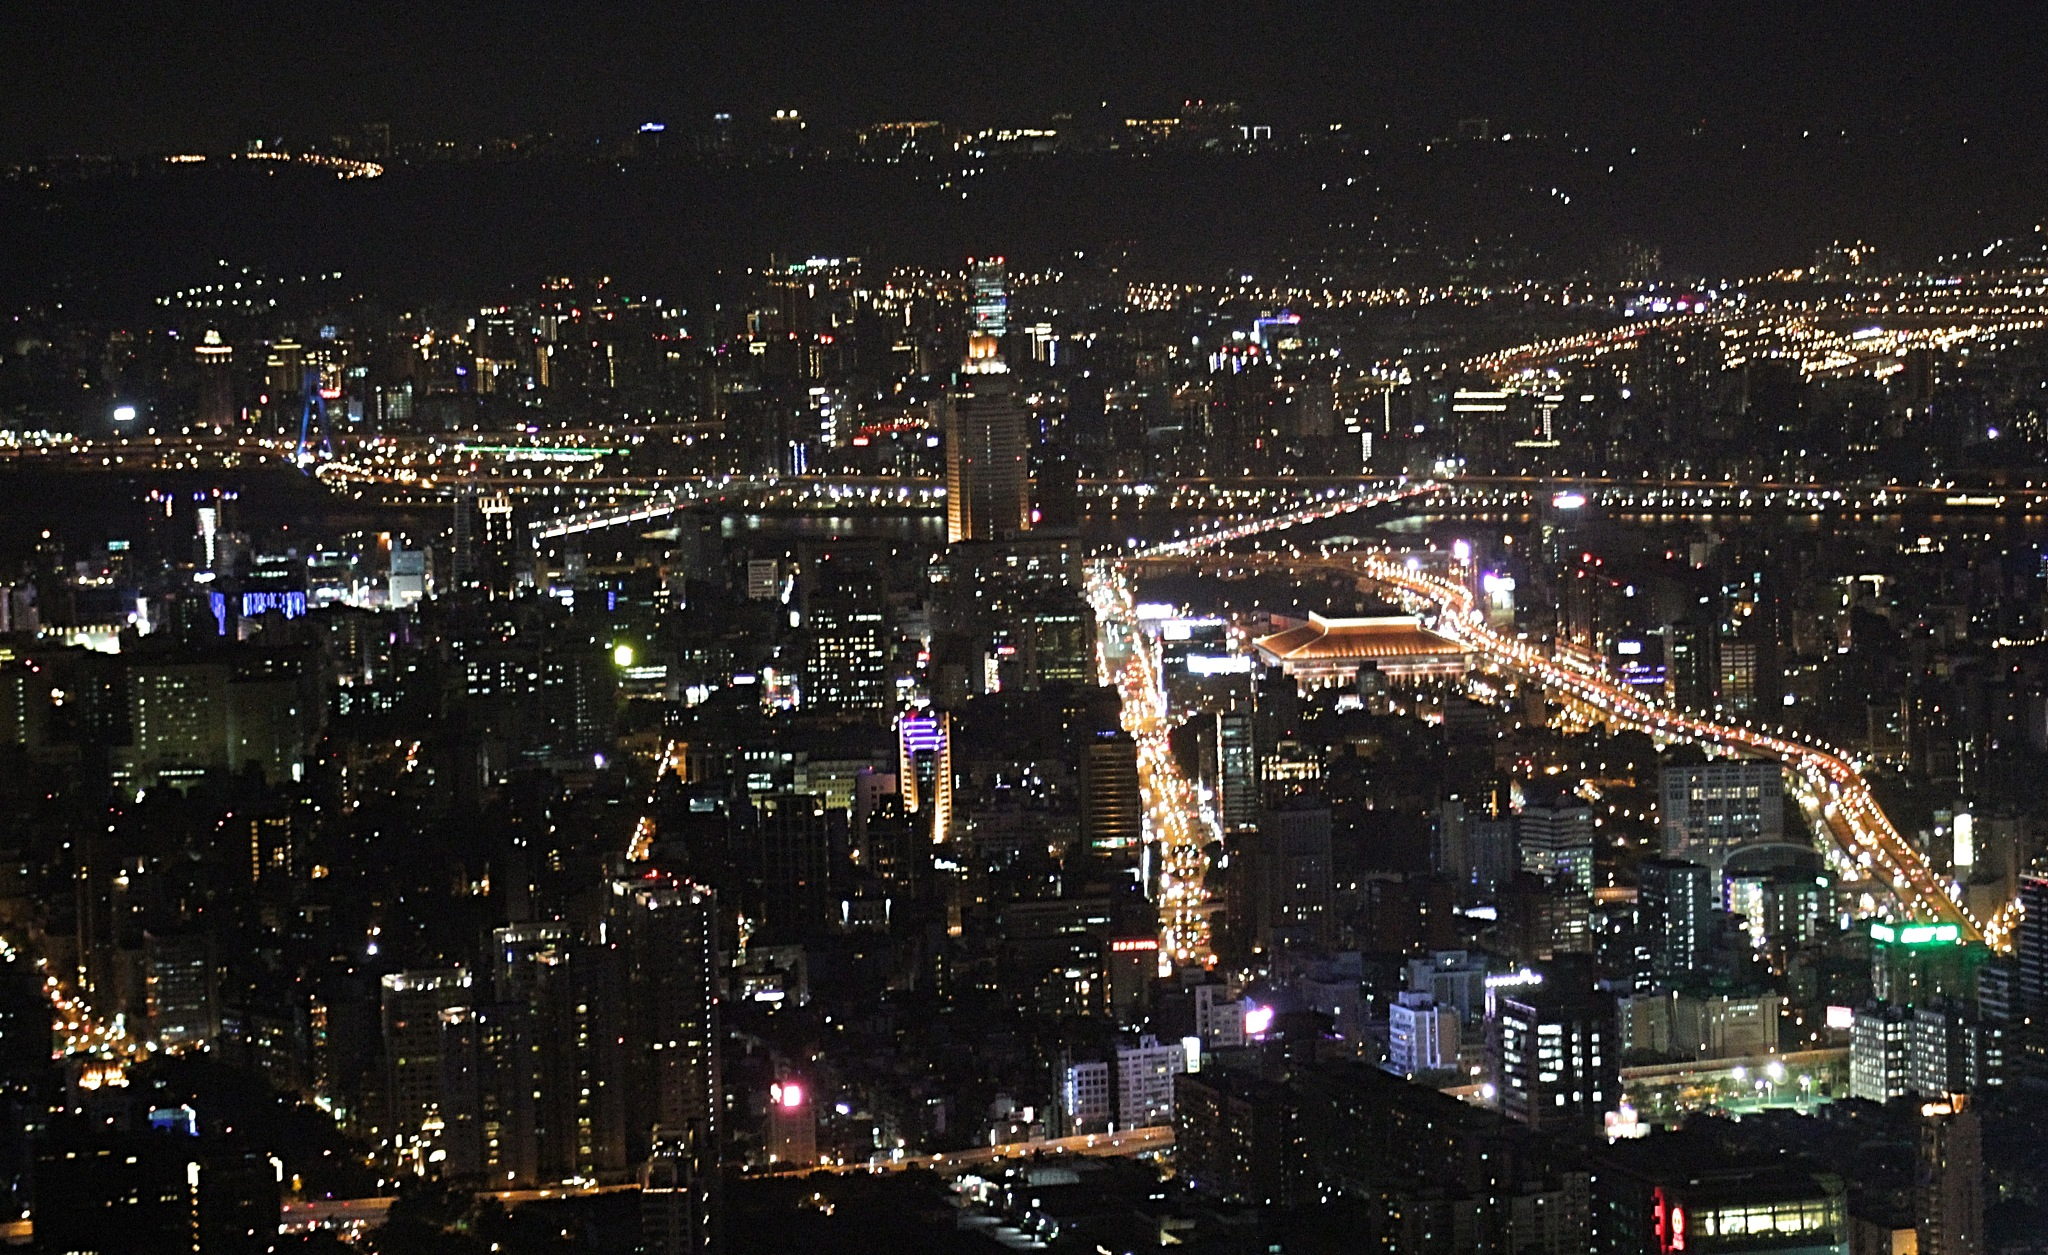 Night view from 101 by Robert Borden